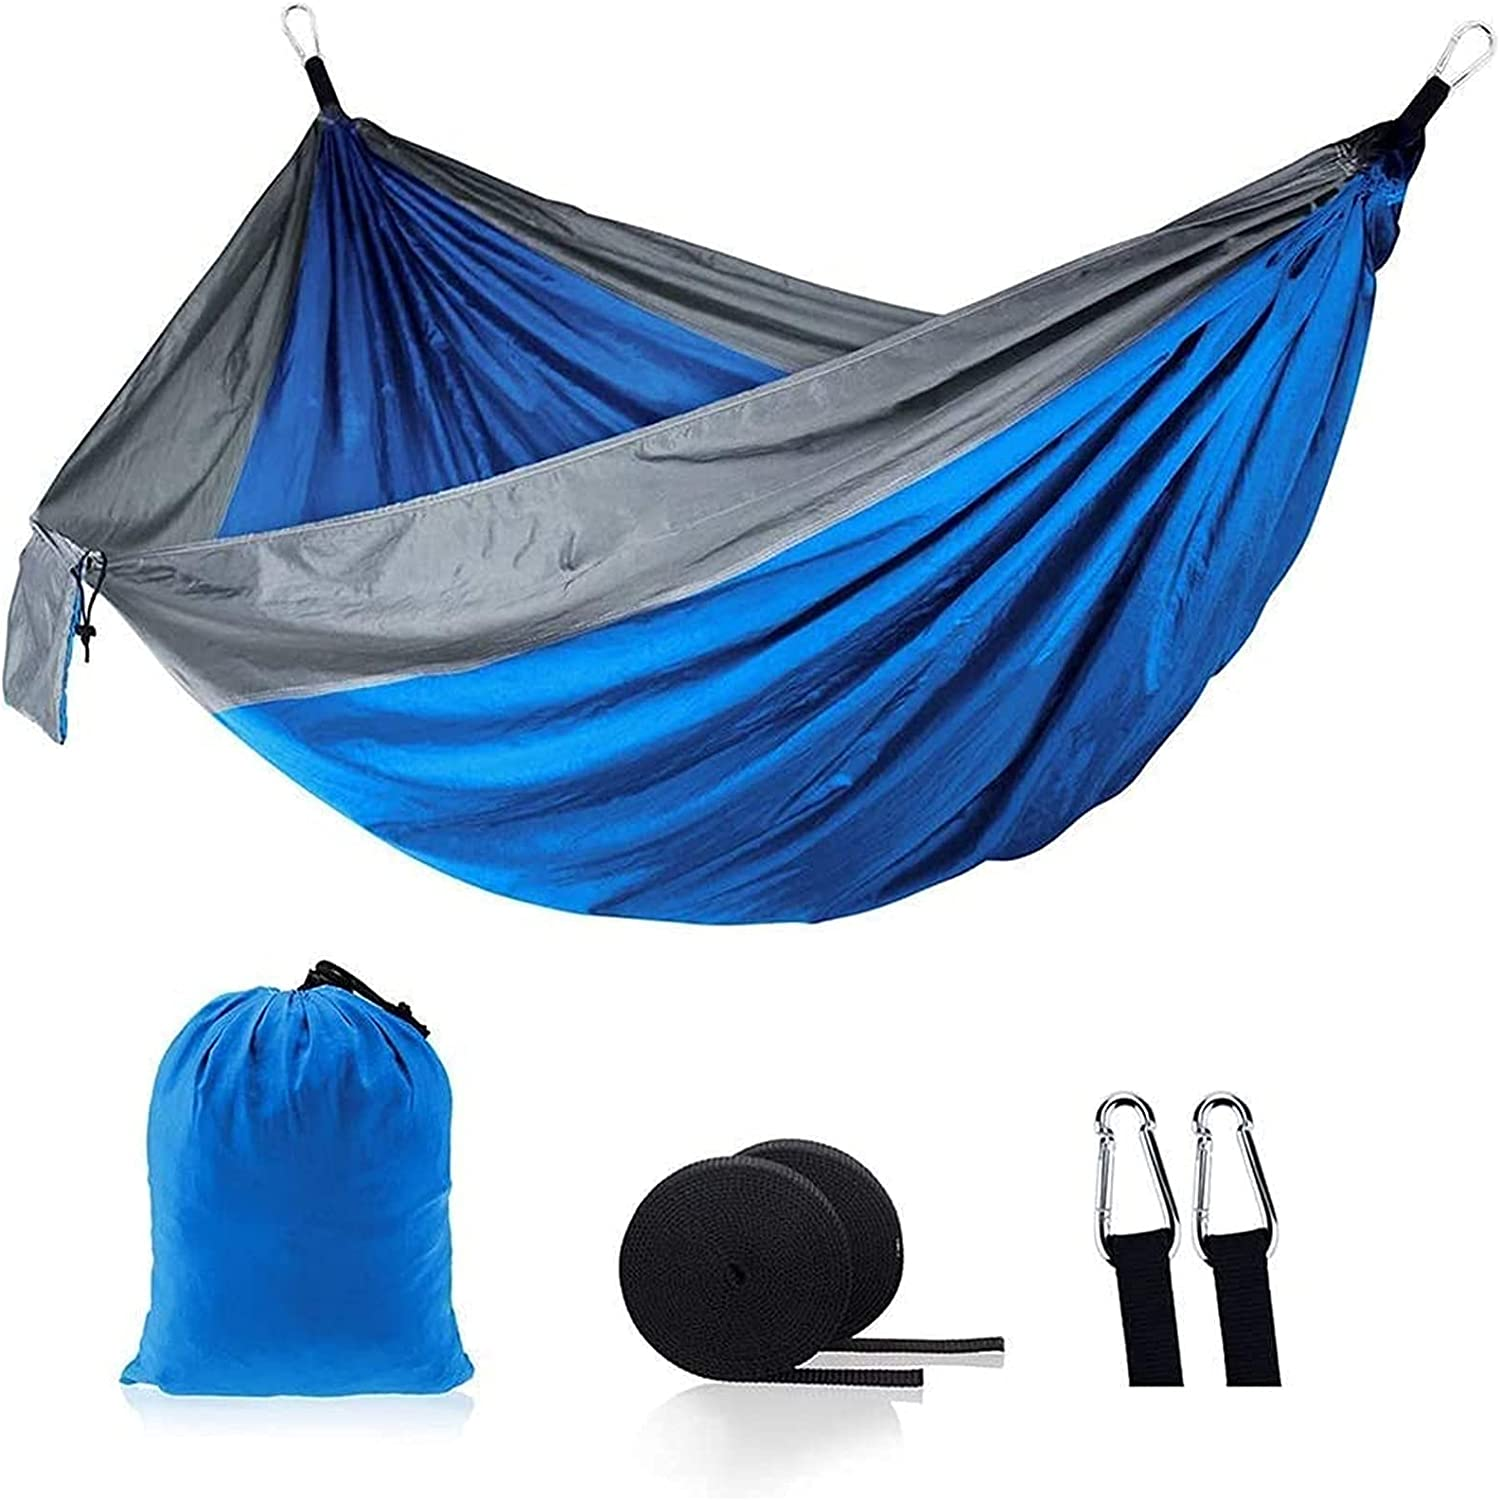 TRYING Portable Outdoor 5 ☆ Ranking TOP19 very popular Hammock 2 Ripst 270 140Cm Person